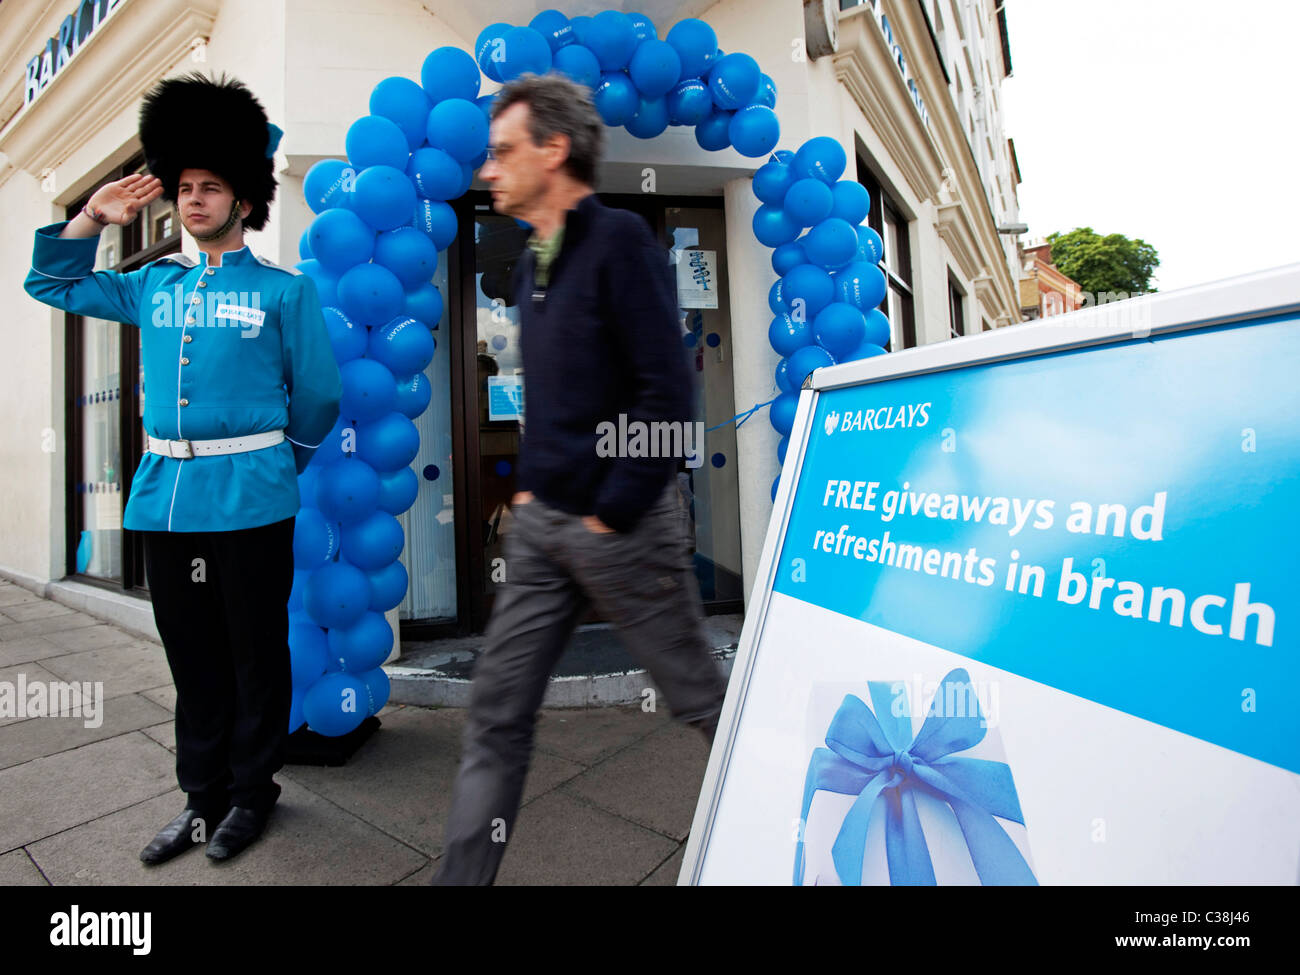 A person passes by a branch of Barclays bank, Cambridge. The guard is part of a PR campaign being run by Barclays. - Stock Image